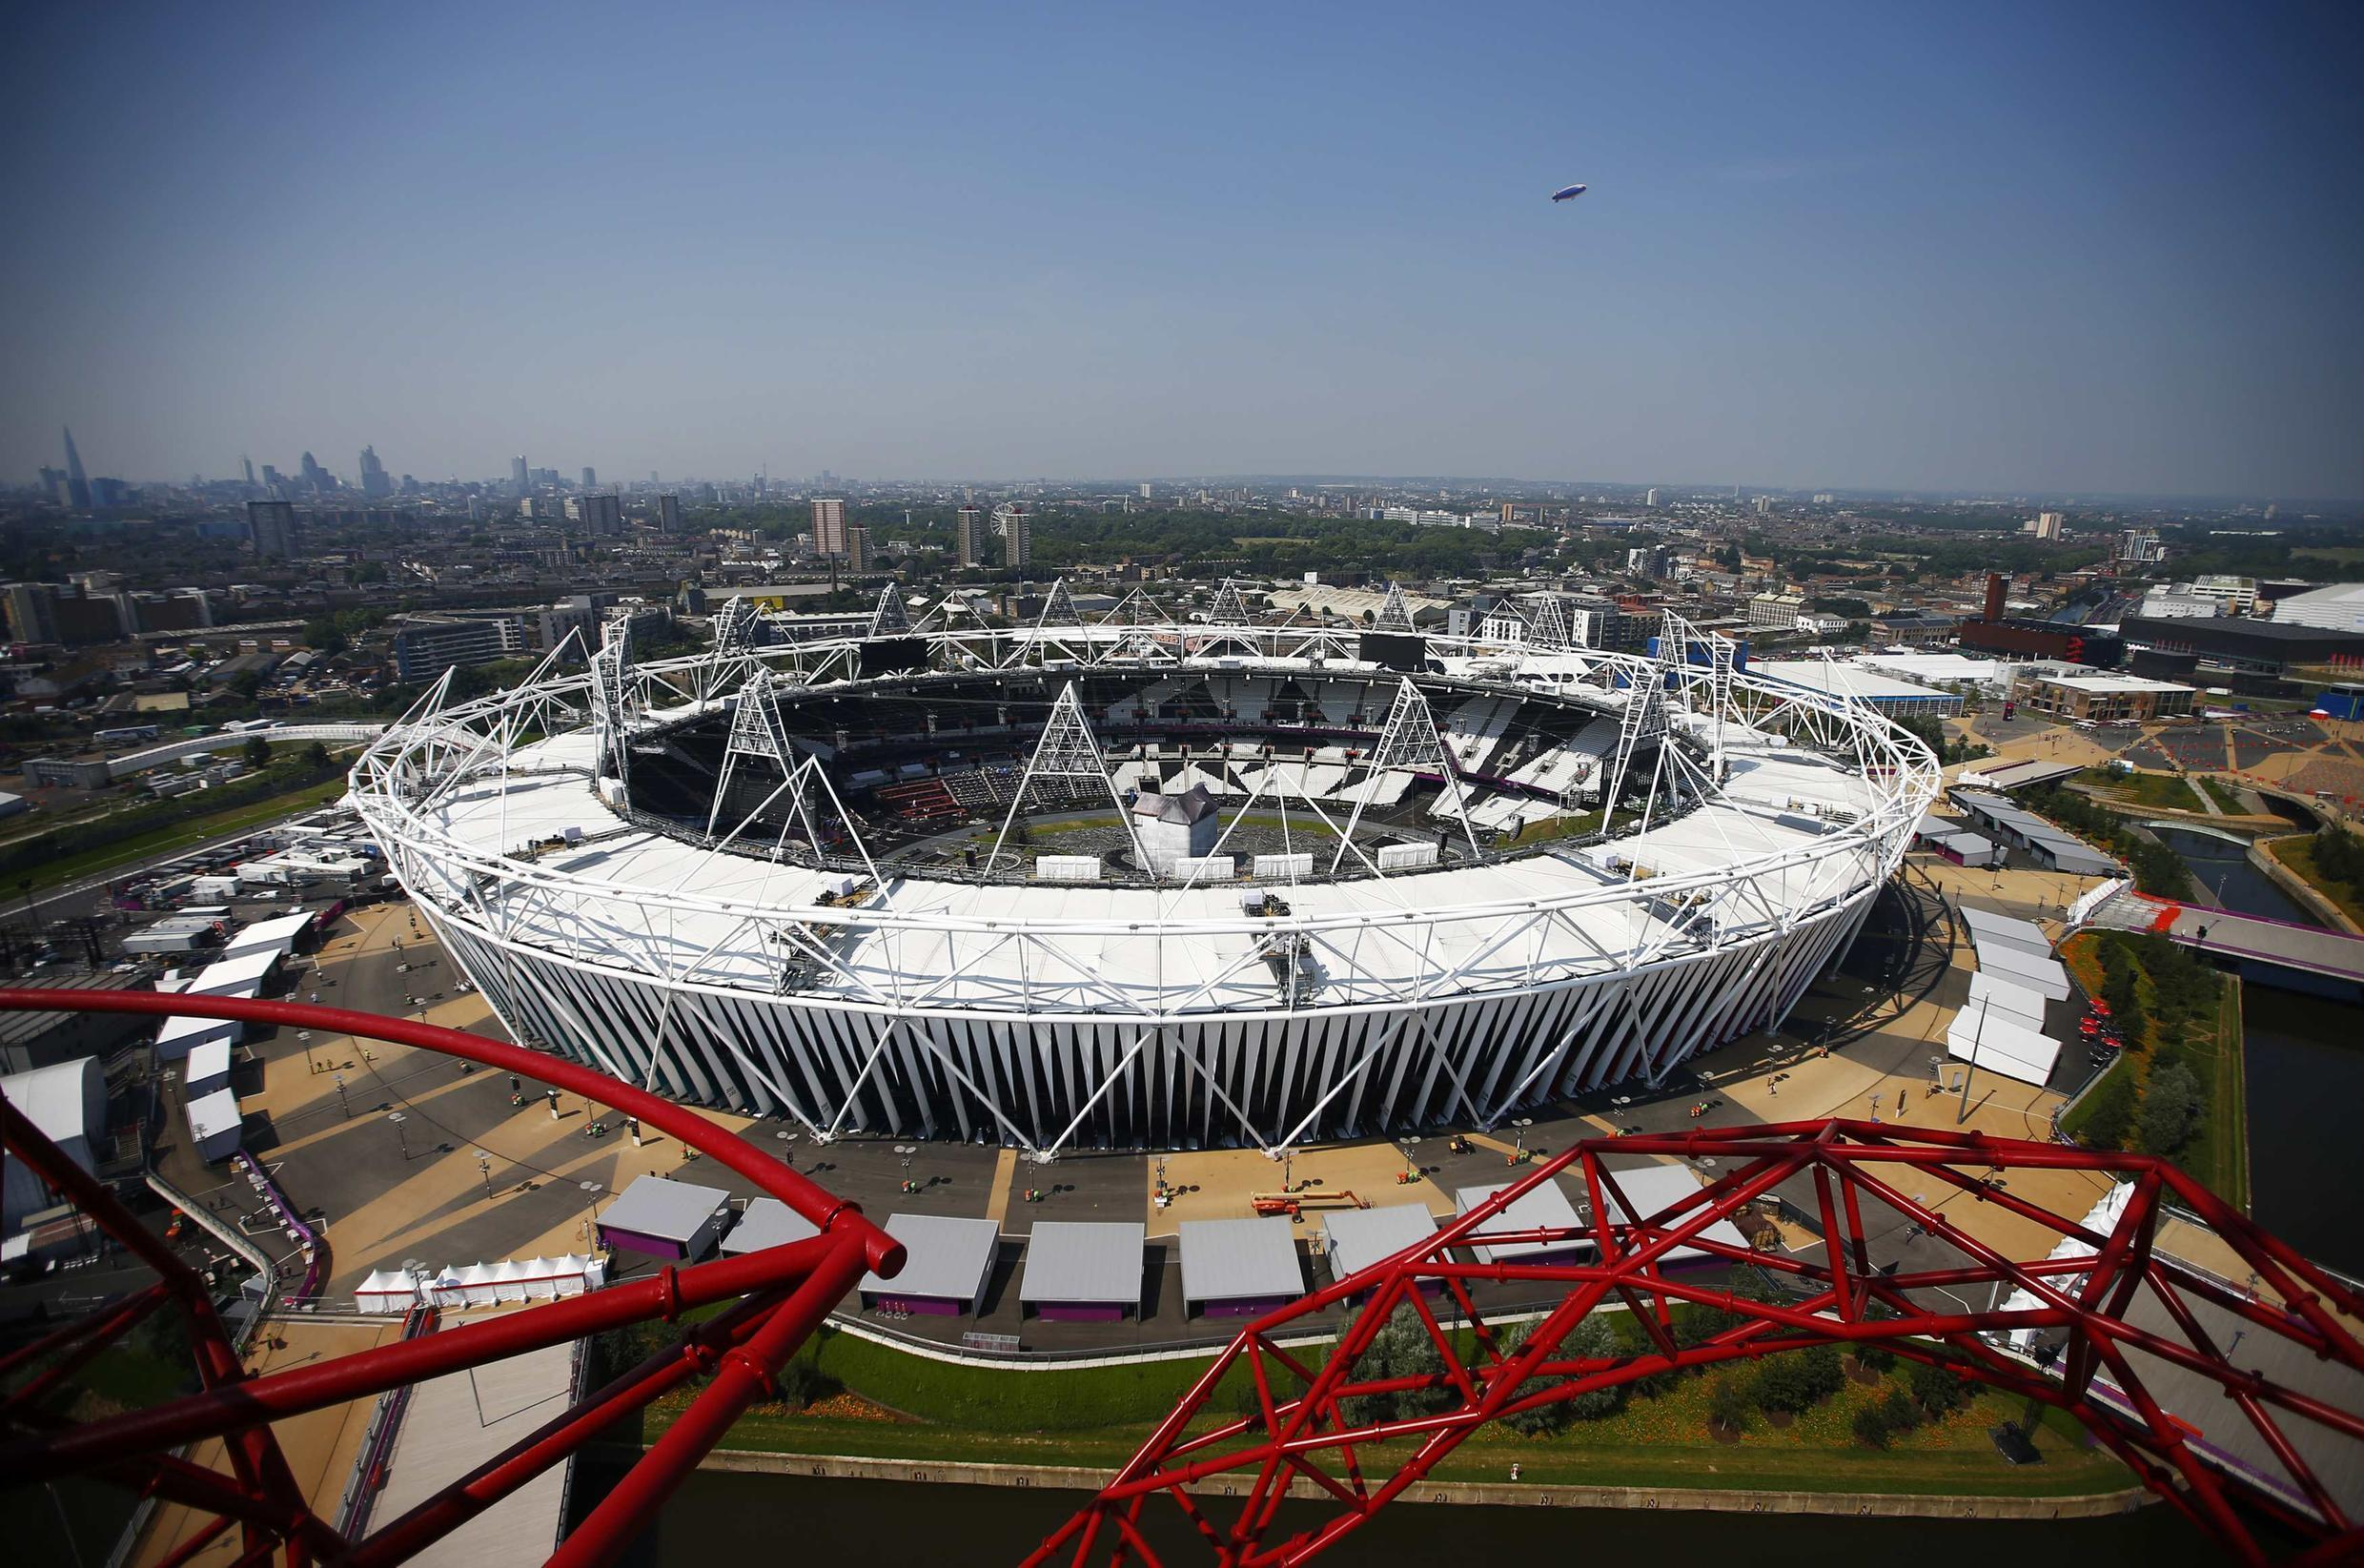 The Olympic Stadium in Stratford, east London, will host the opening ceremony